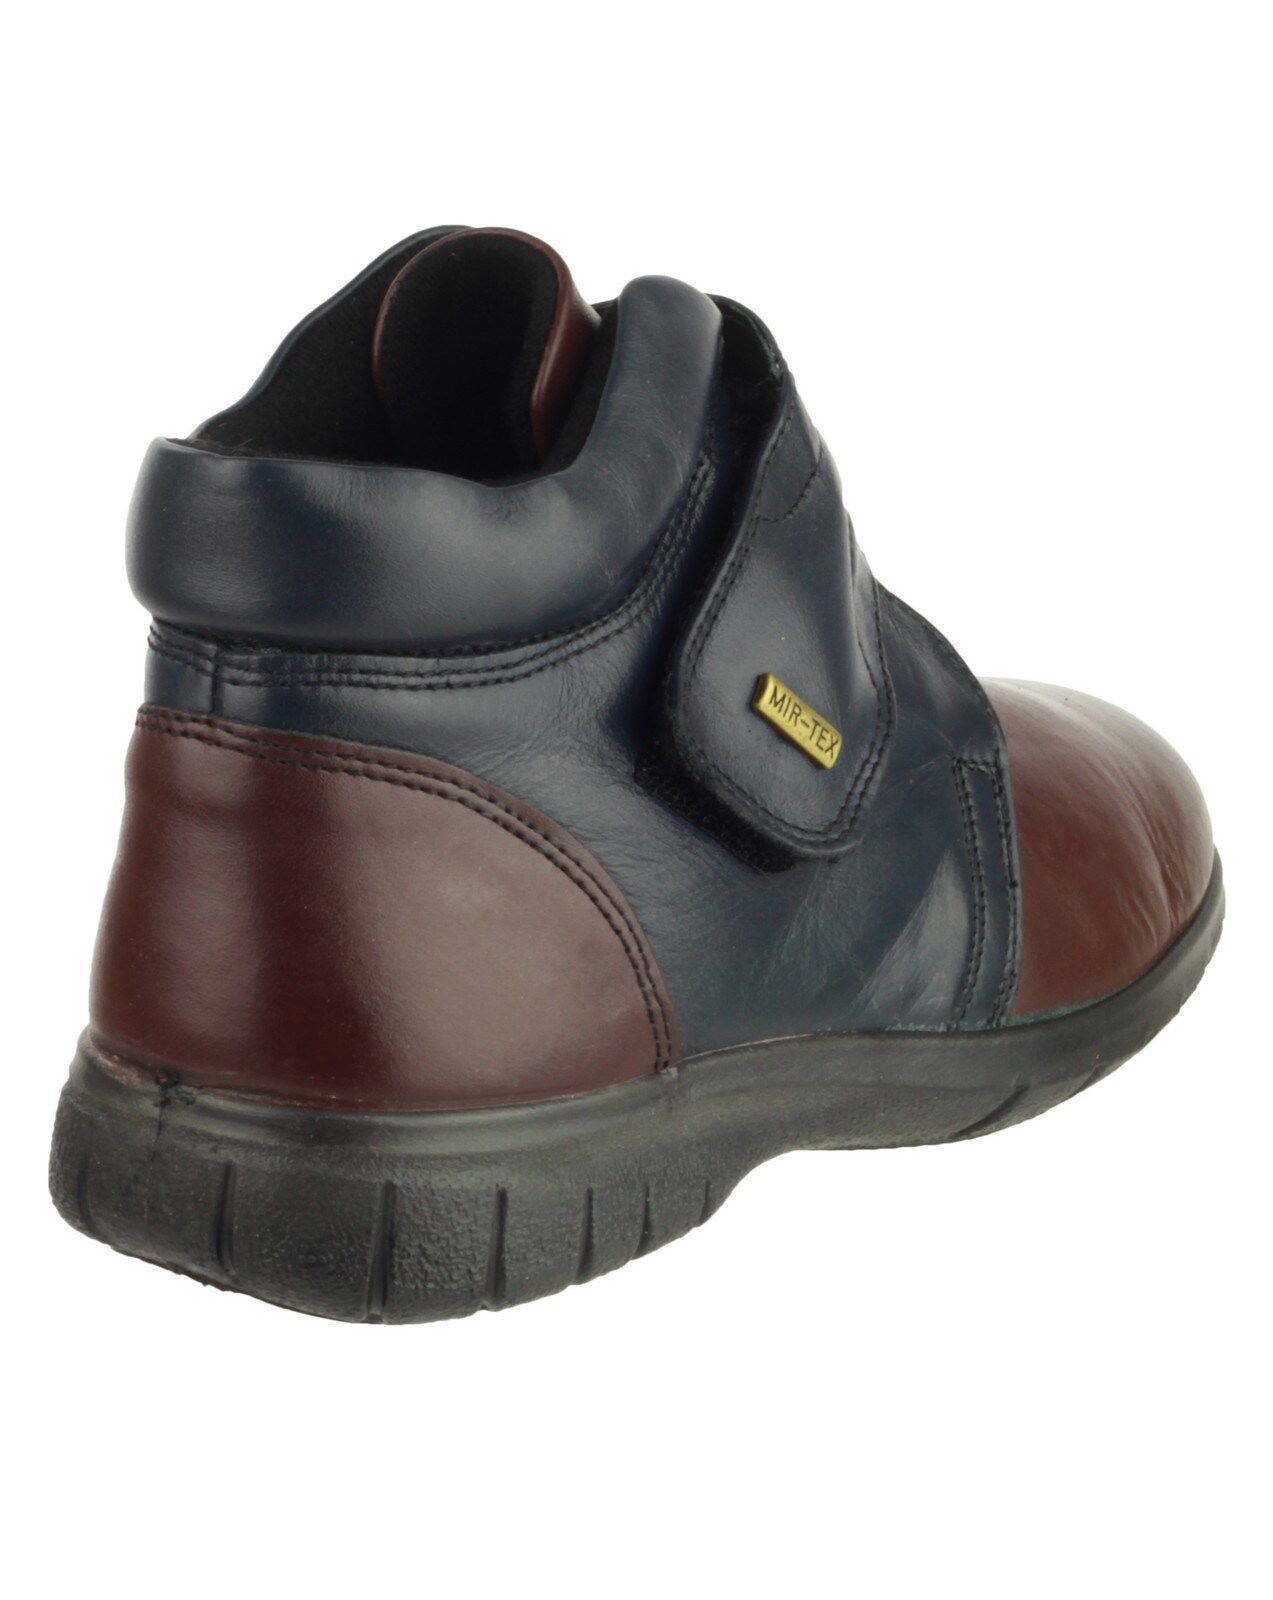 Cotswold Cotswold Cotswold Chalford damen Ankle Walking Work Stiefel UK3-8 4e688f